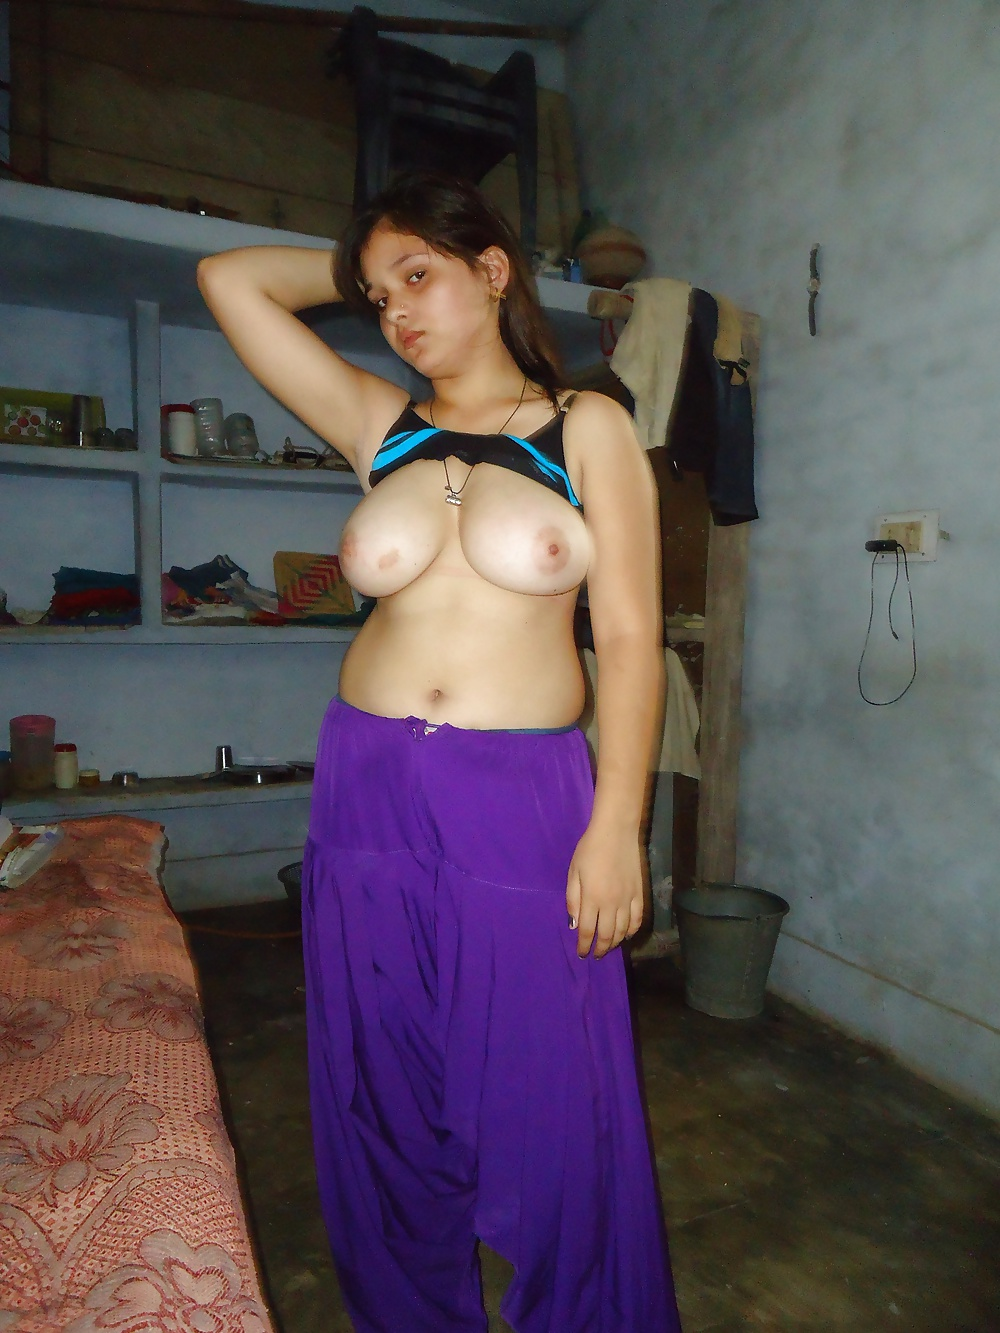 Punjabi girls sex photos